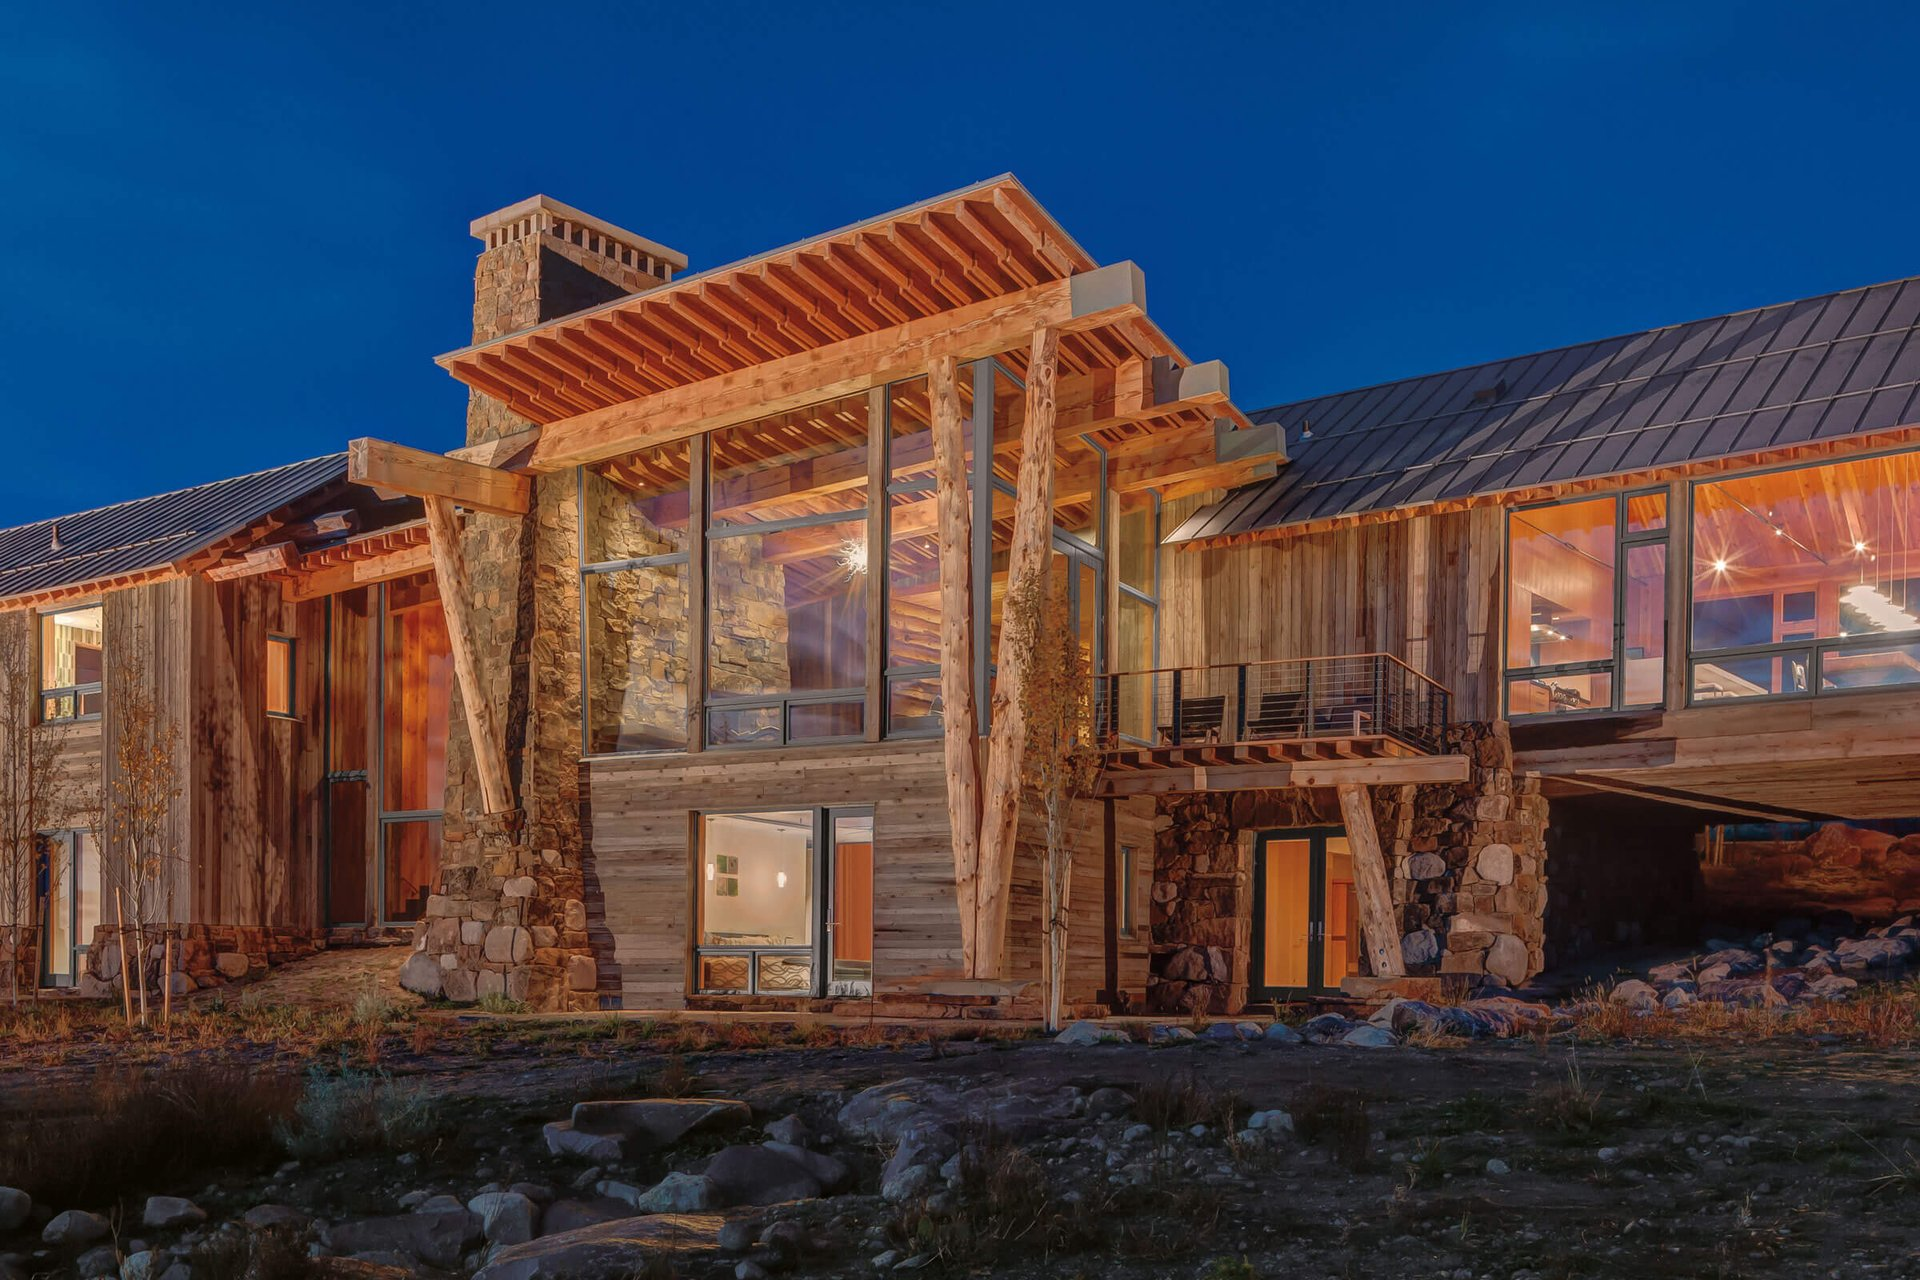 Mountain Cabin With Signature Ultimate Awning Push Out Windows